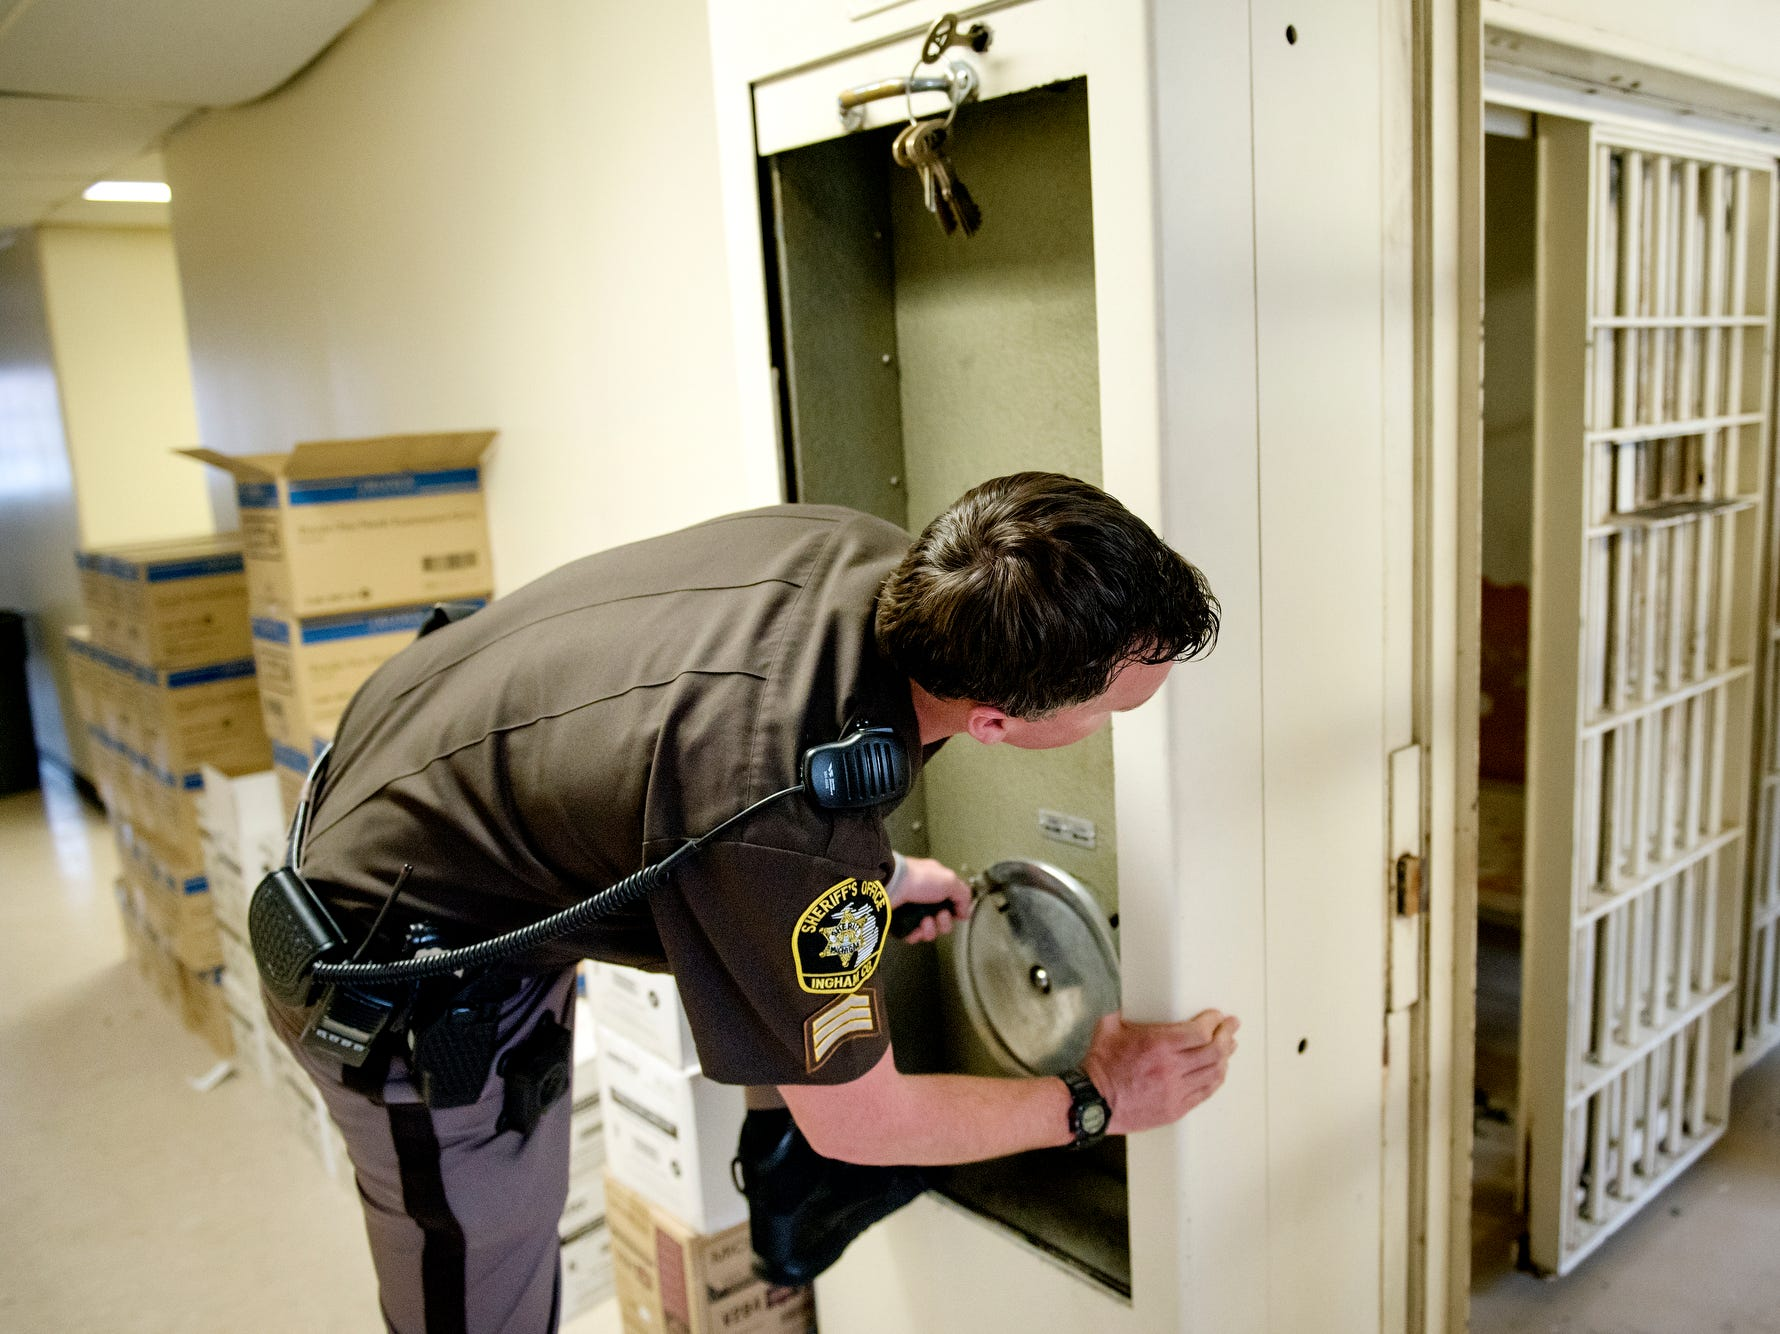 Ingham County Sheriff Deputy James Every uses an outdated crank system to open cell doors during a tour of the Ingham County Jail on Tuesday, April 24, 2018, in Mason.